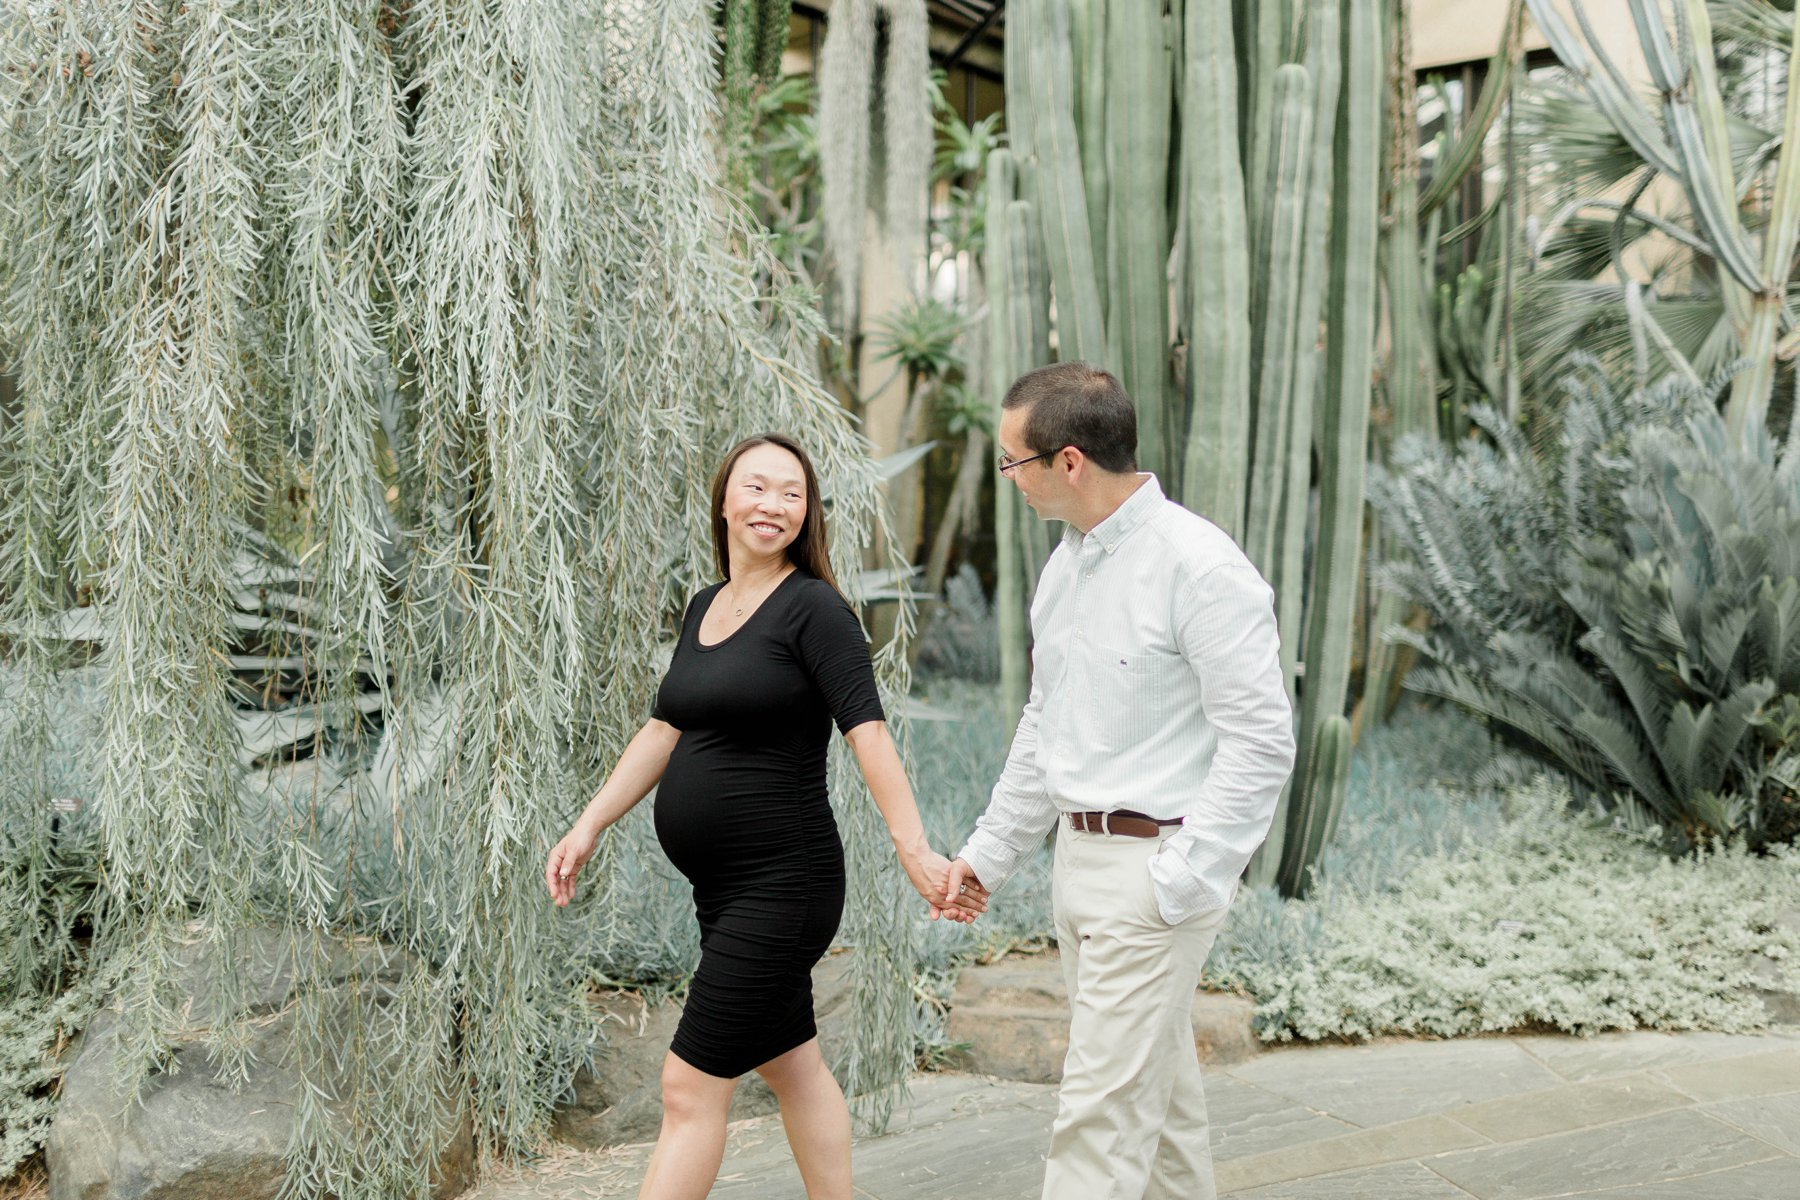 Longwood_Gardens_Maternity_Session_24